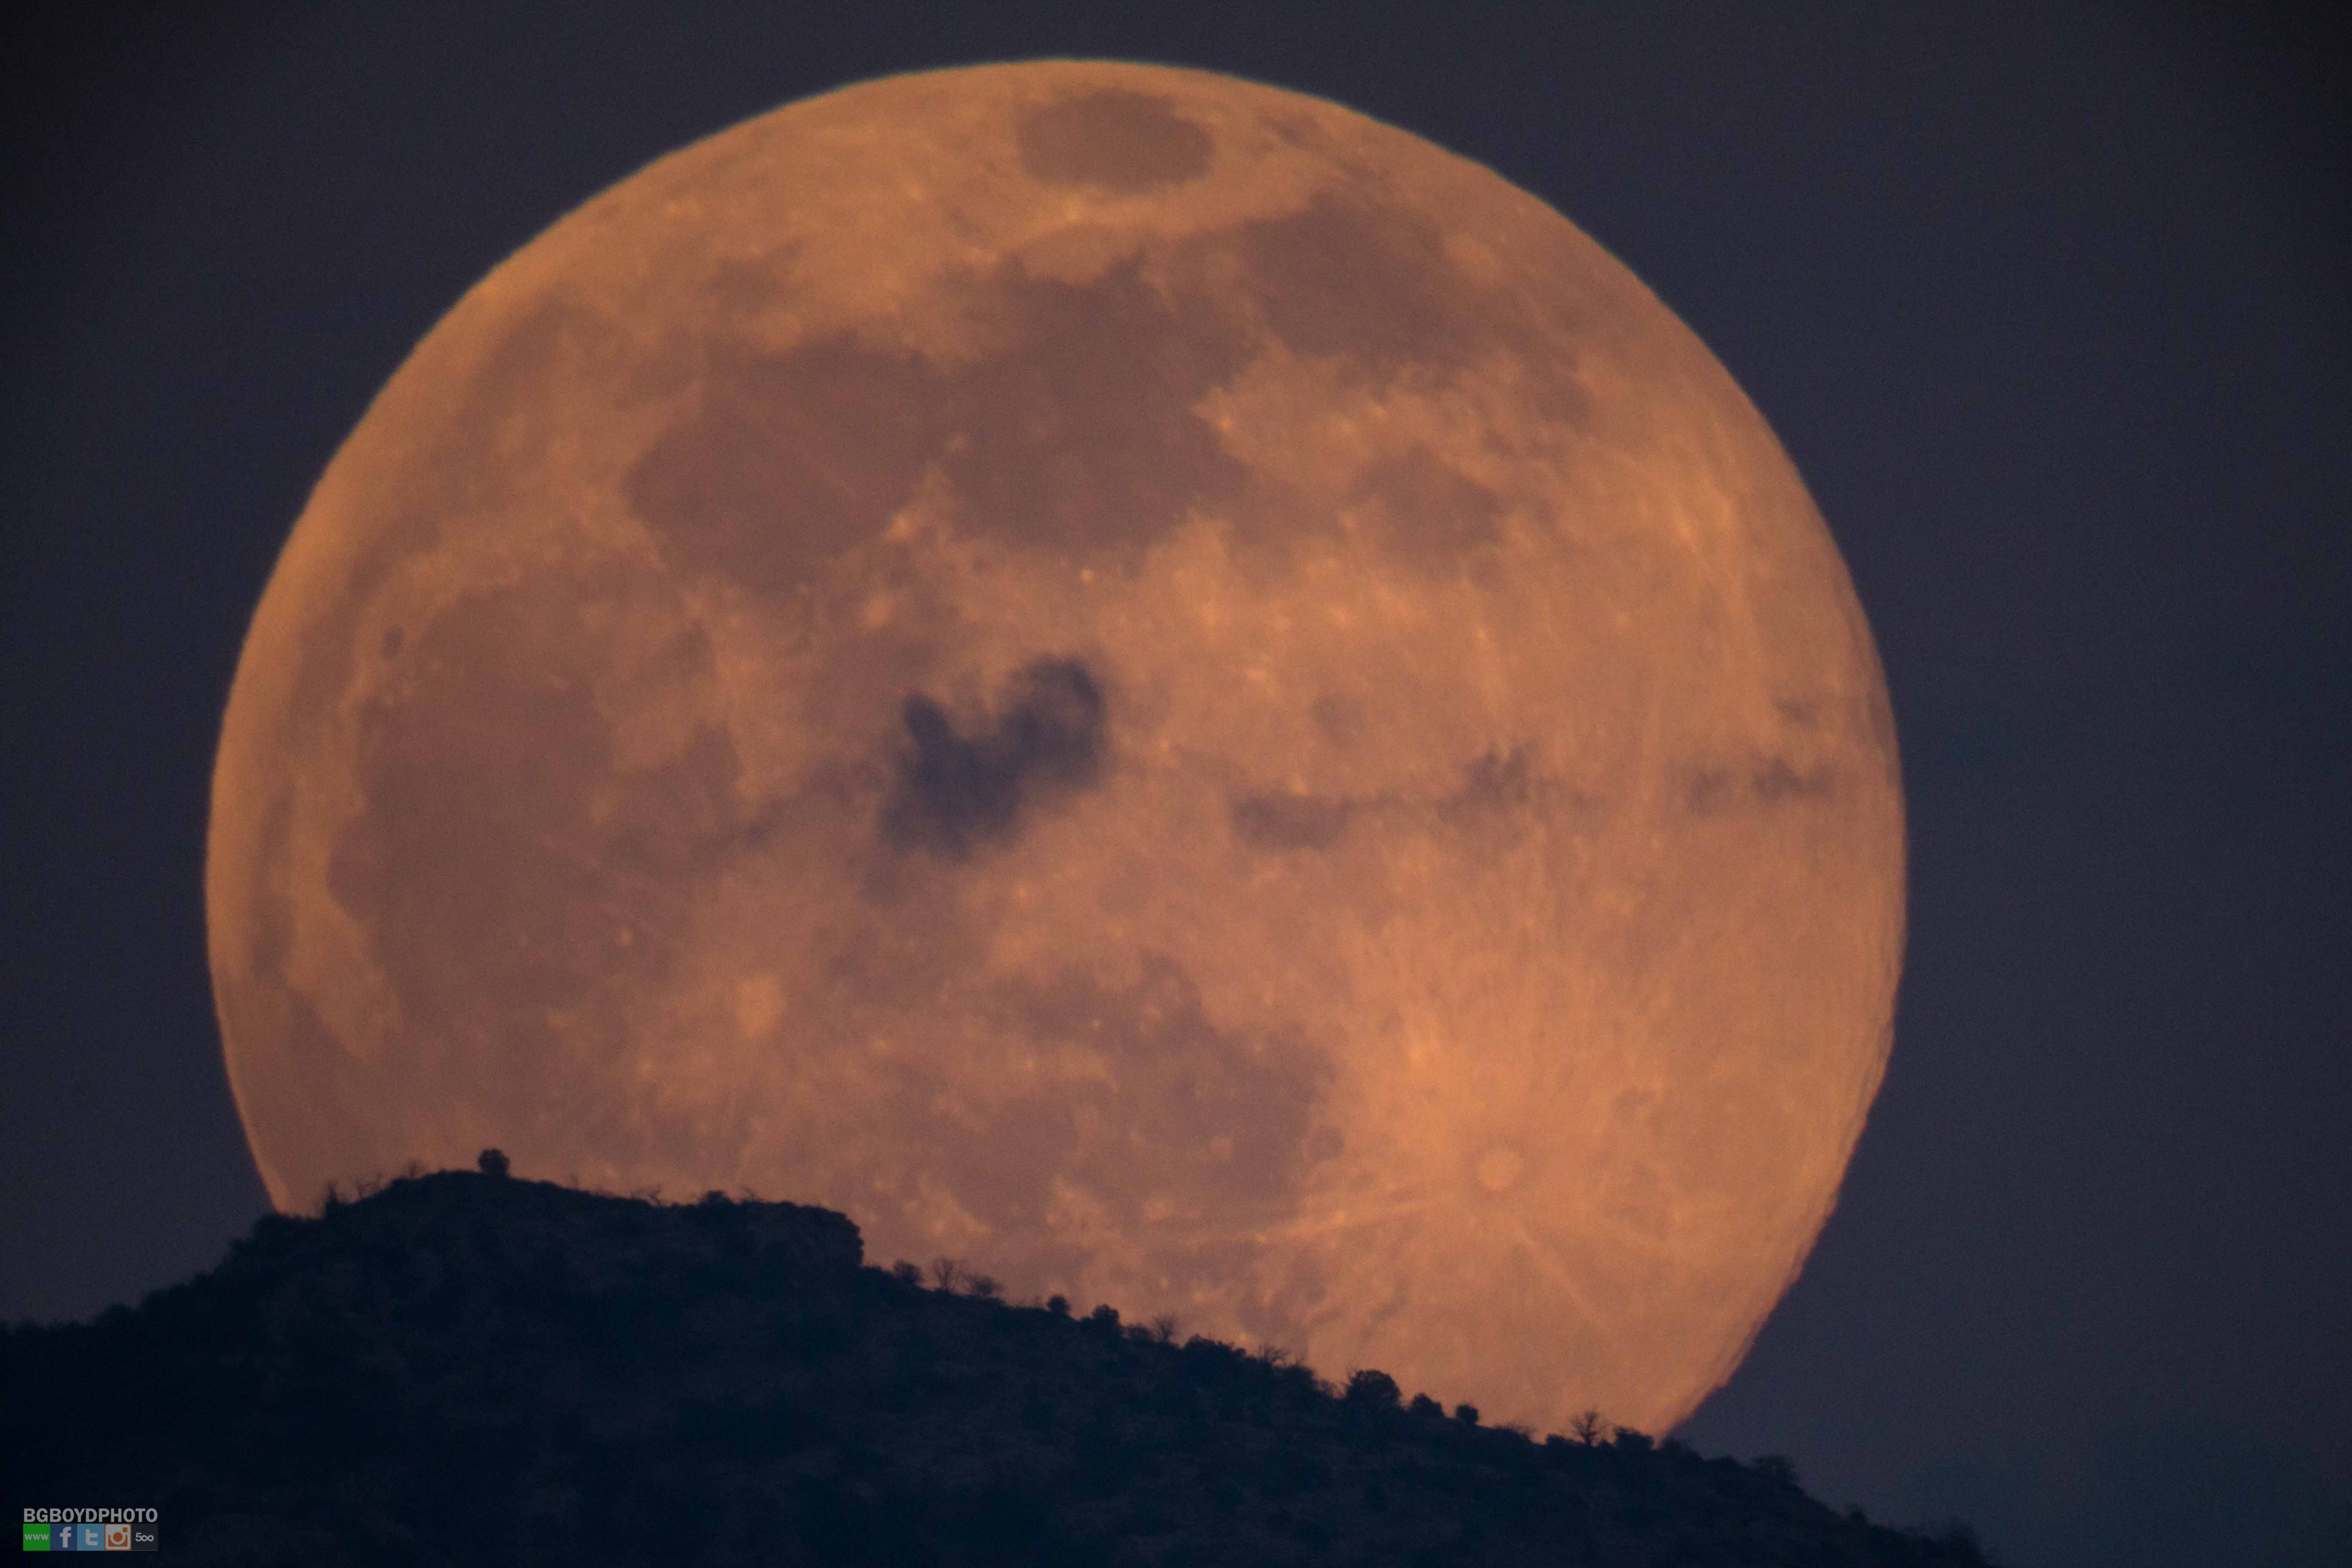 Spooky 'Honey' Moon Casts Glow on Friday the 13th (Photos)